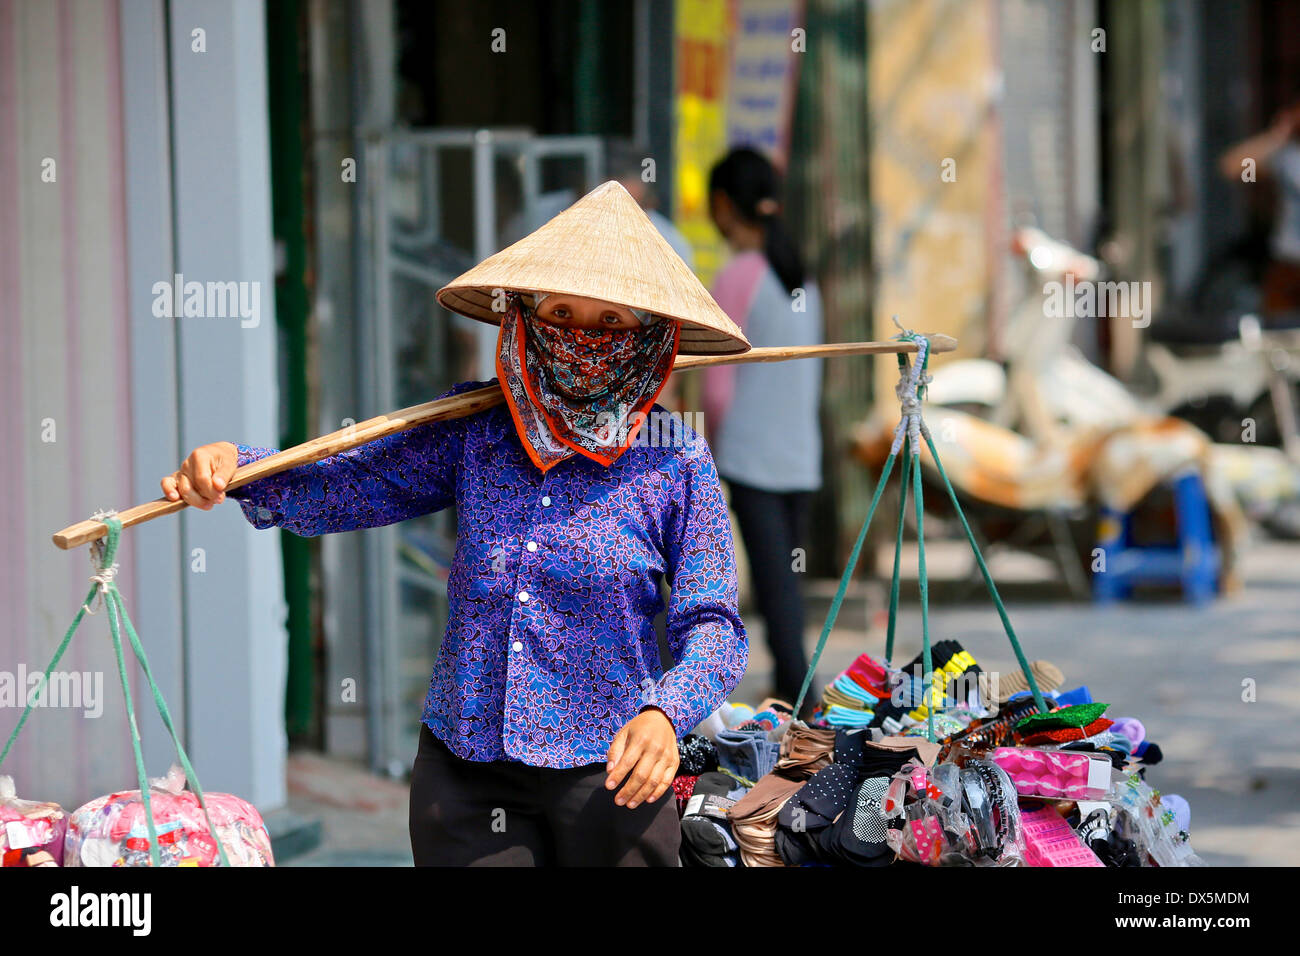 Street scene in the old quarter of Hanoi.  Street trader  in traditional conical hat carrying goods using a traditional yoke. - Stock Image